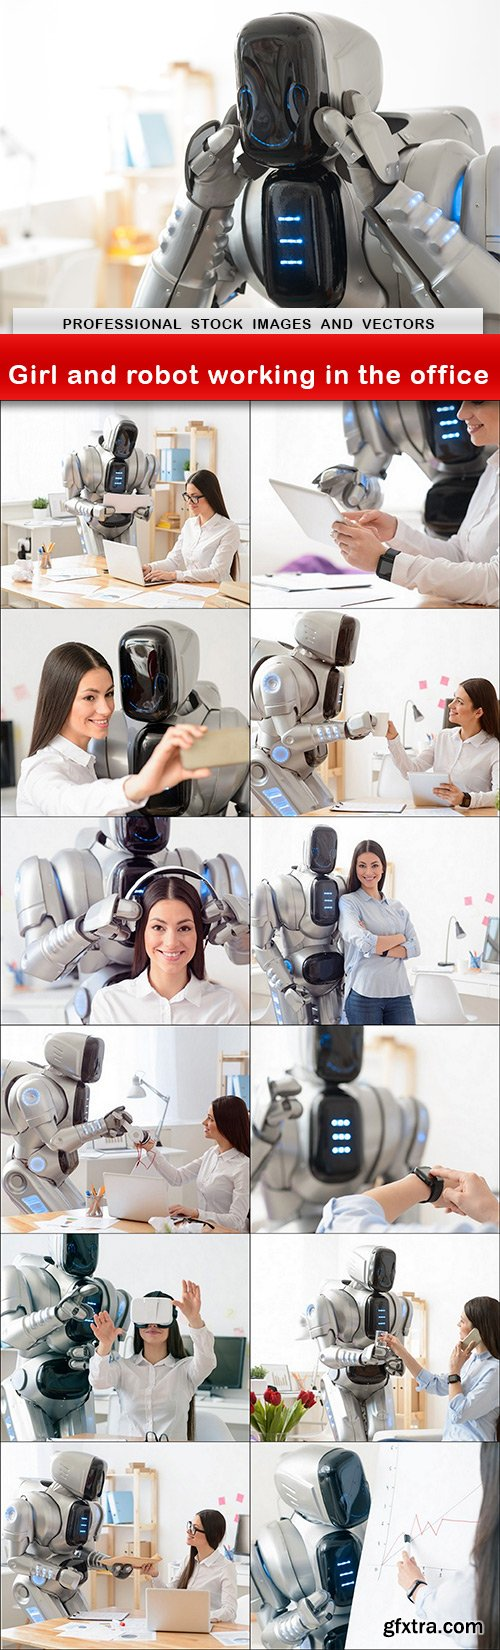 Girl and robot working in the office - 13 UHQ JPEG